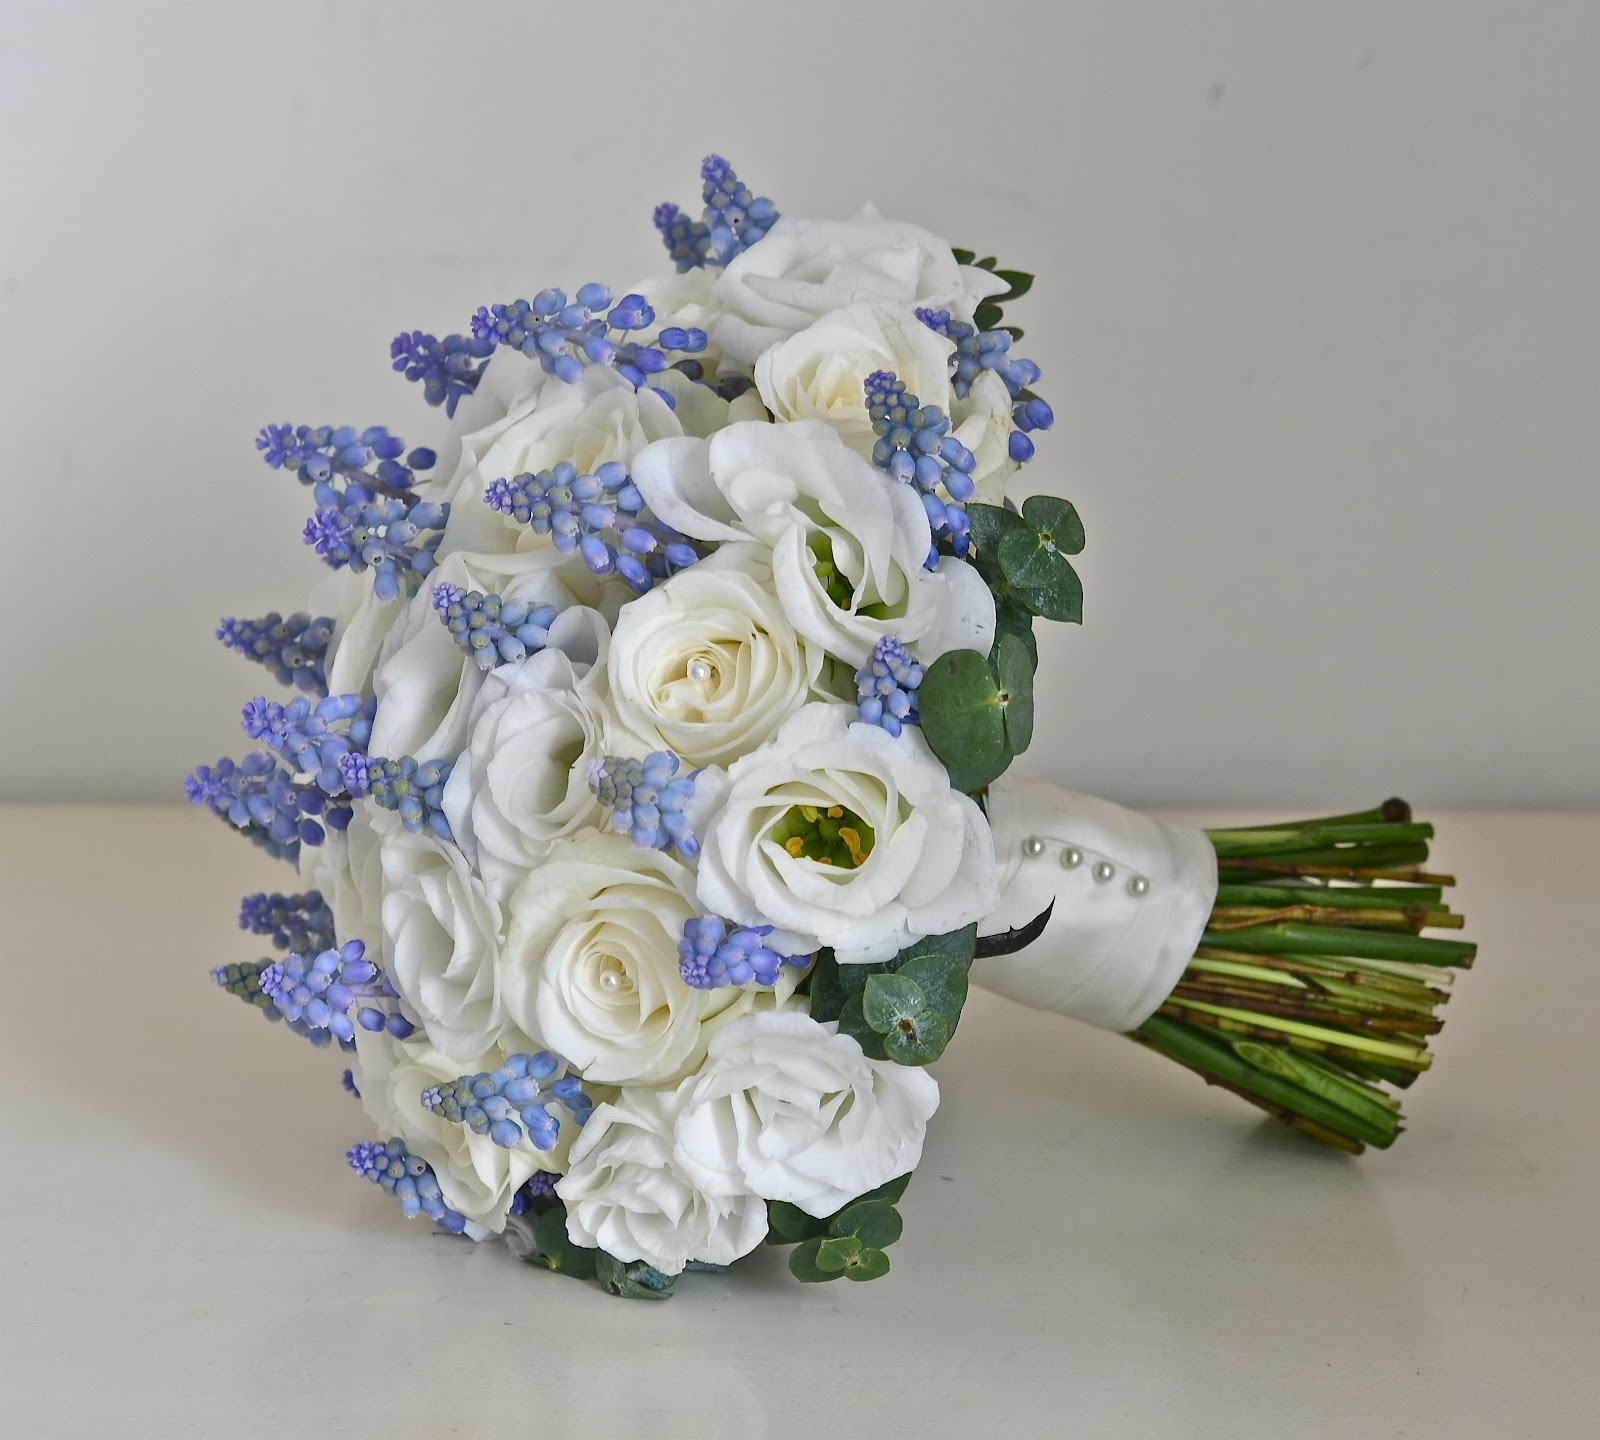 blue bouquet We're kansas city based wedding florists and event designers that specialize in curated and personal designs.